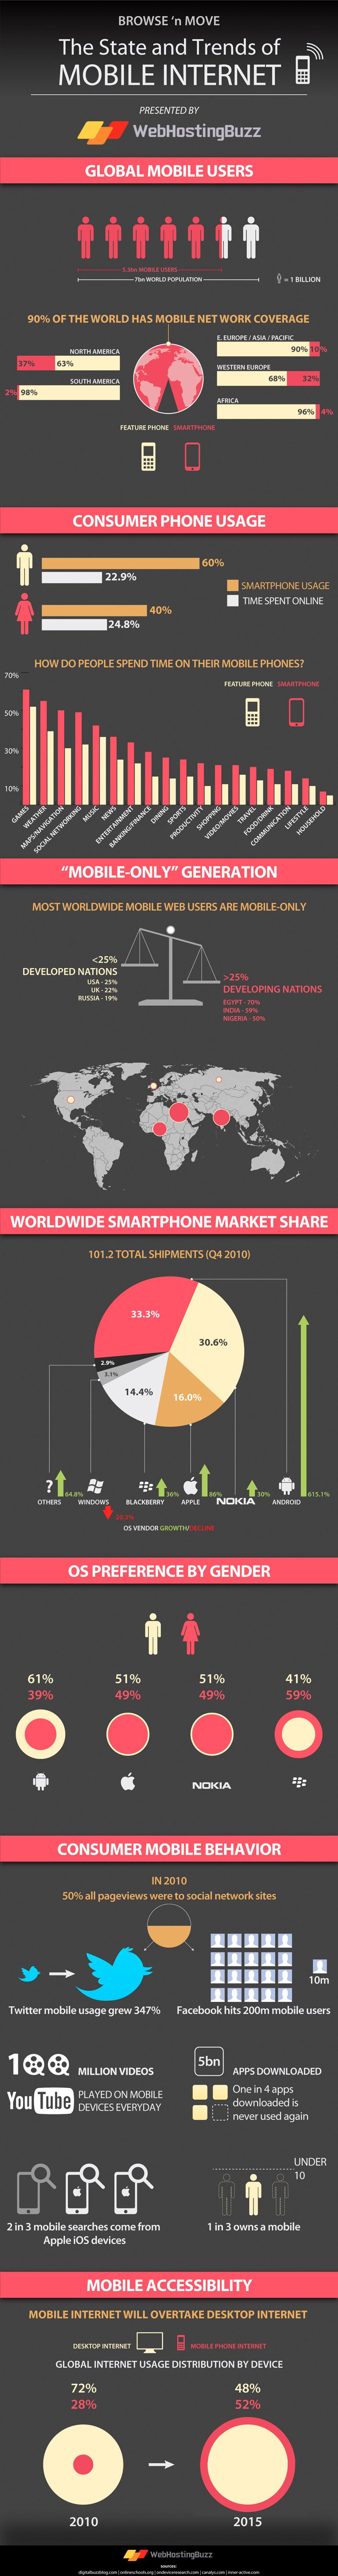 The-State-And-Trends-Of-Mobile-Internet-infographic